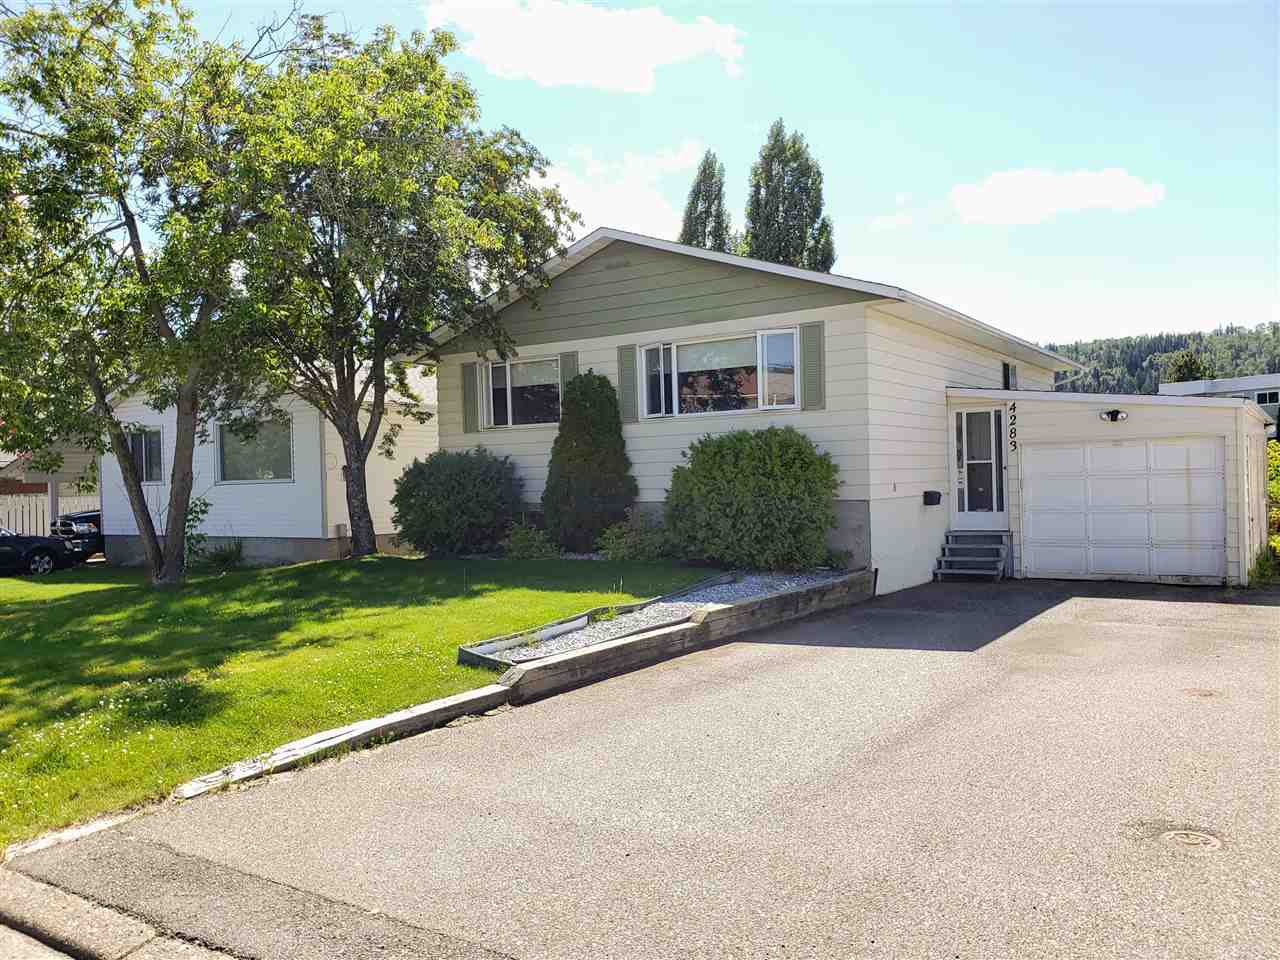 Main Photo: 4283 MERTON Crescent in Prince George: Lakewood House for sale (PG City West (Zone 71))  : MLS®# R2483920